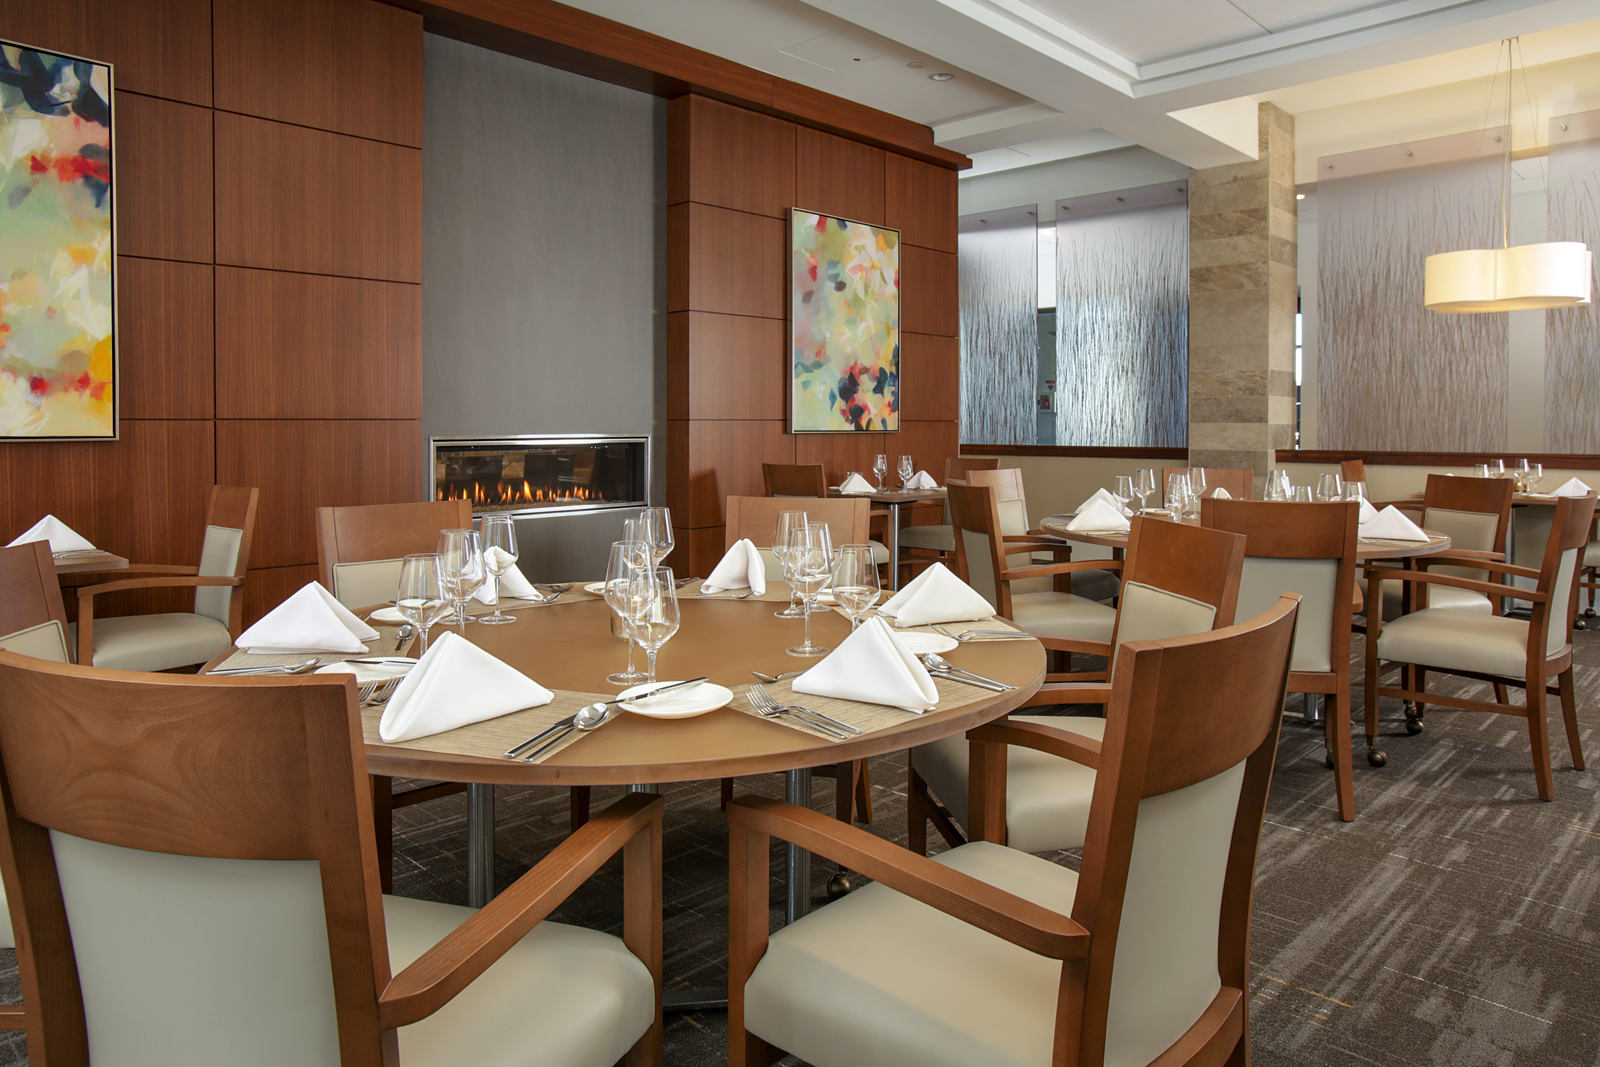 The fireplace provides a central focal point in this independent living retirement community's dining room design